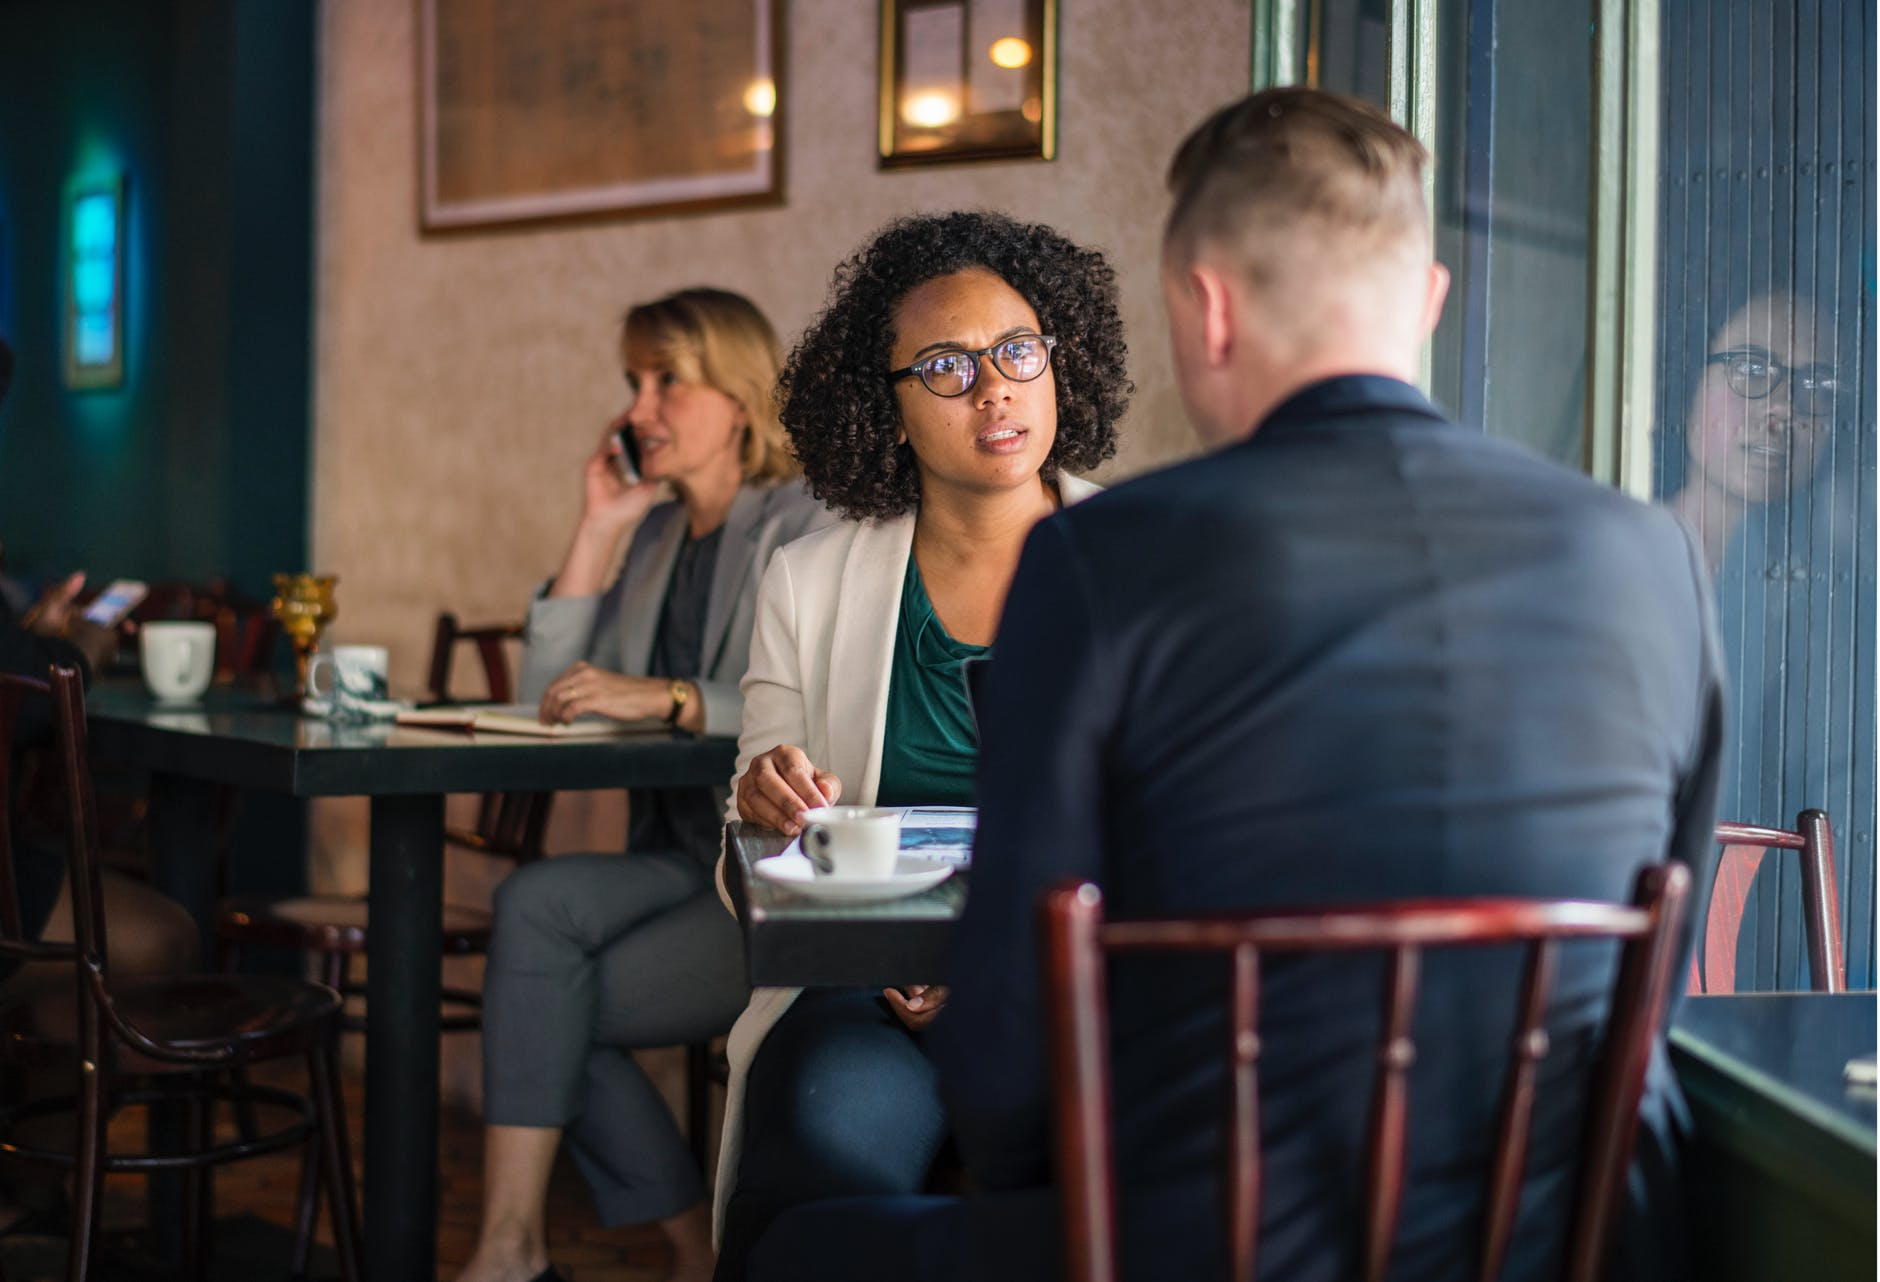 The Benefits Of Professional Counseling